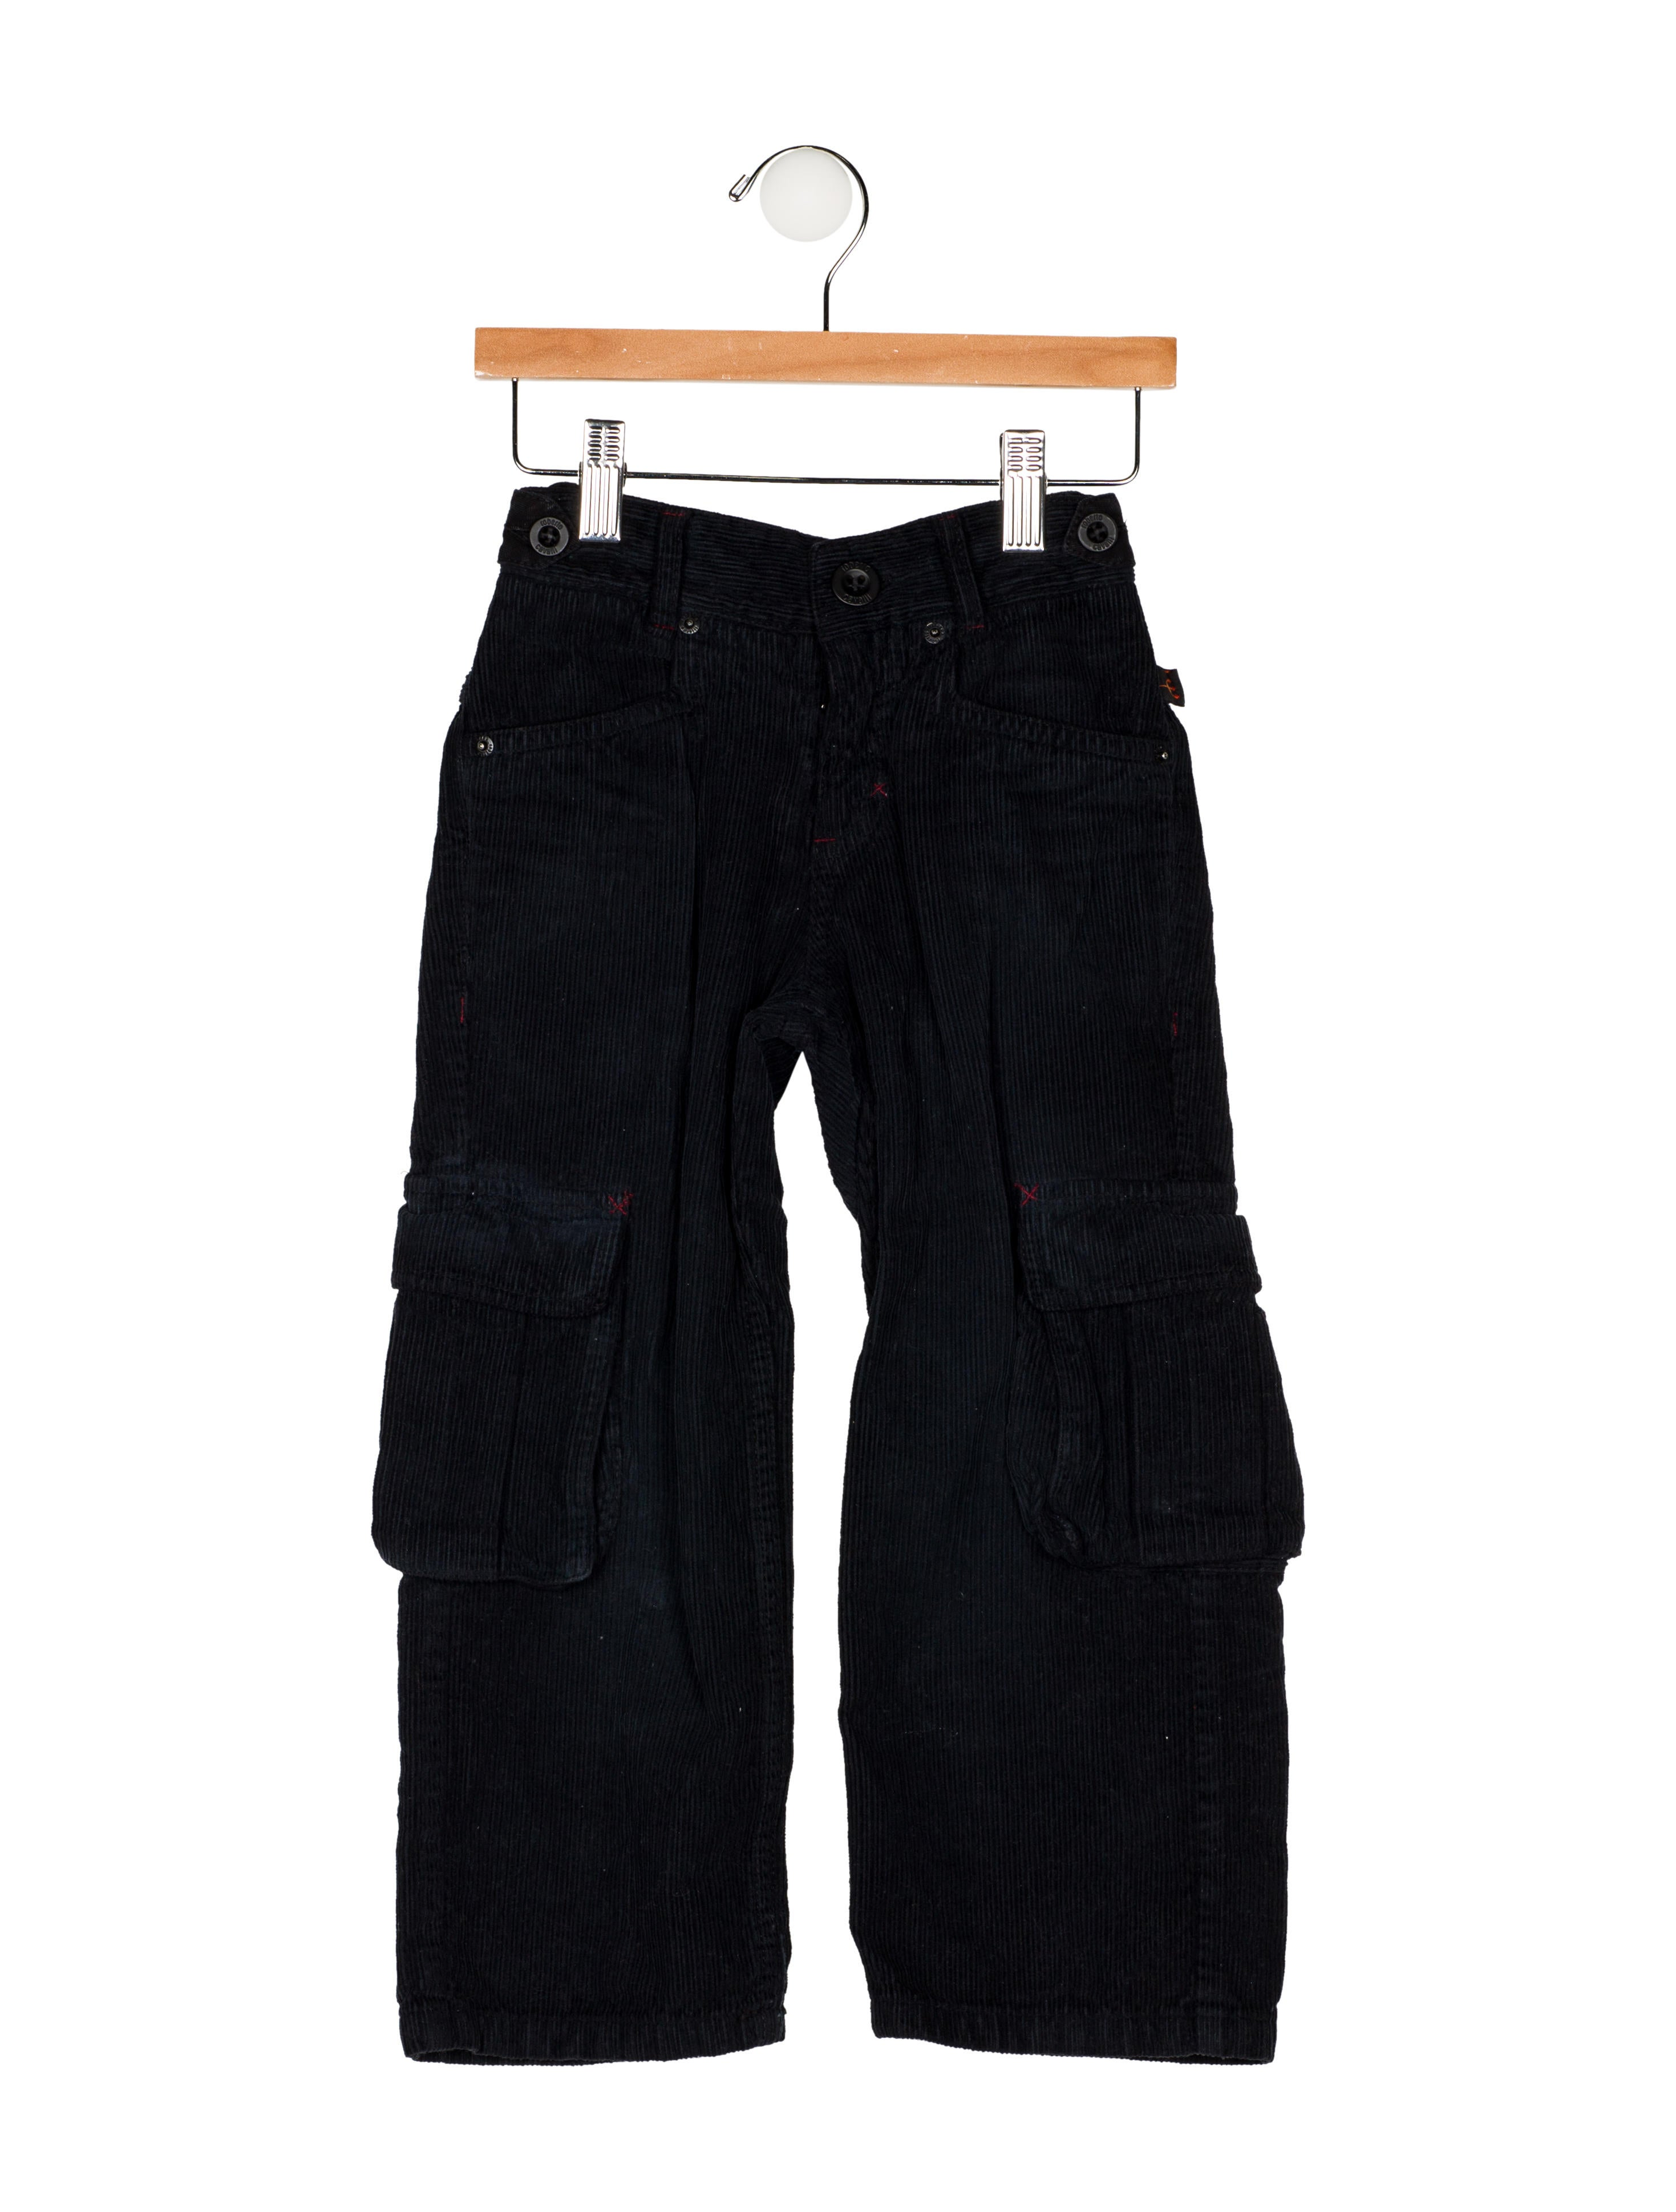 11829a4445 Roberto Cavalli Boys  Corduroy Straight-Leg Pants - Boys - ROB57624 ...